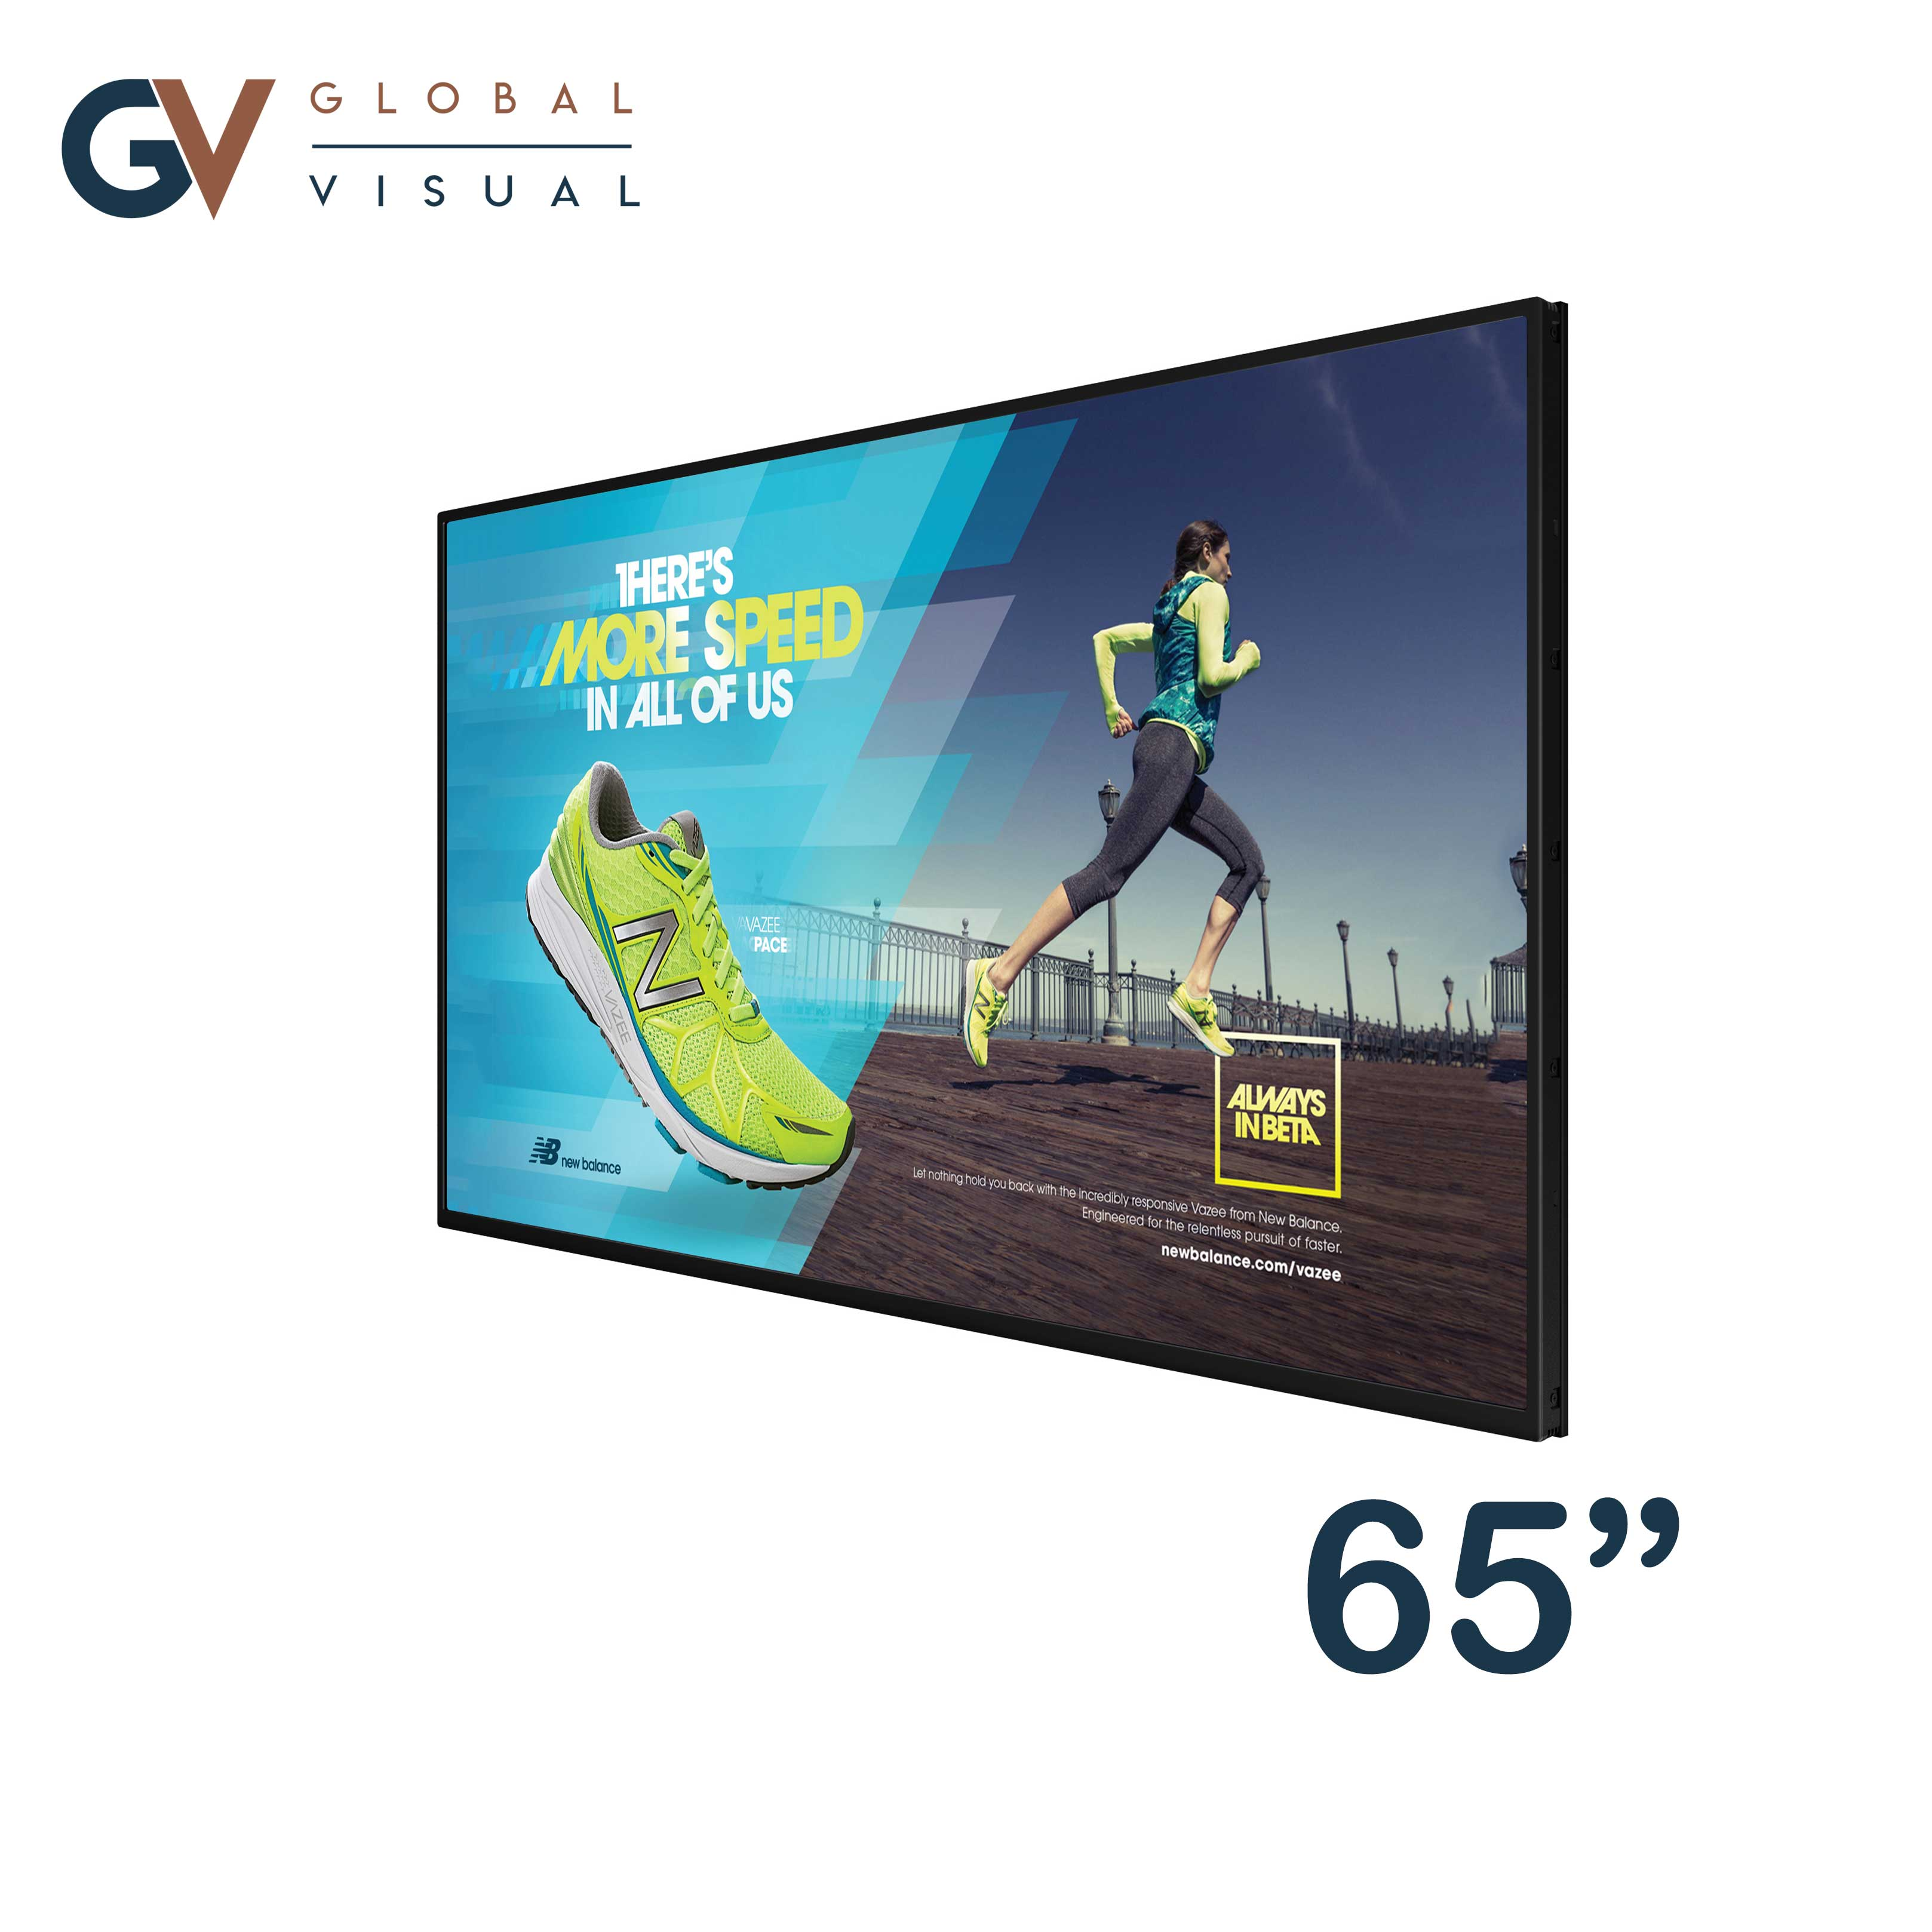 "Image of a 65"" 4K commercial display"